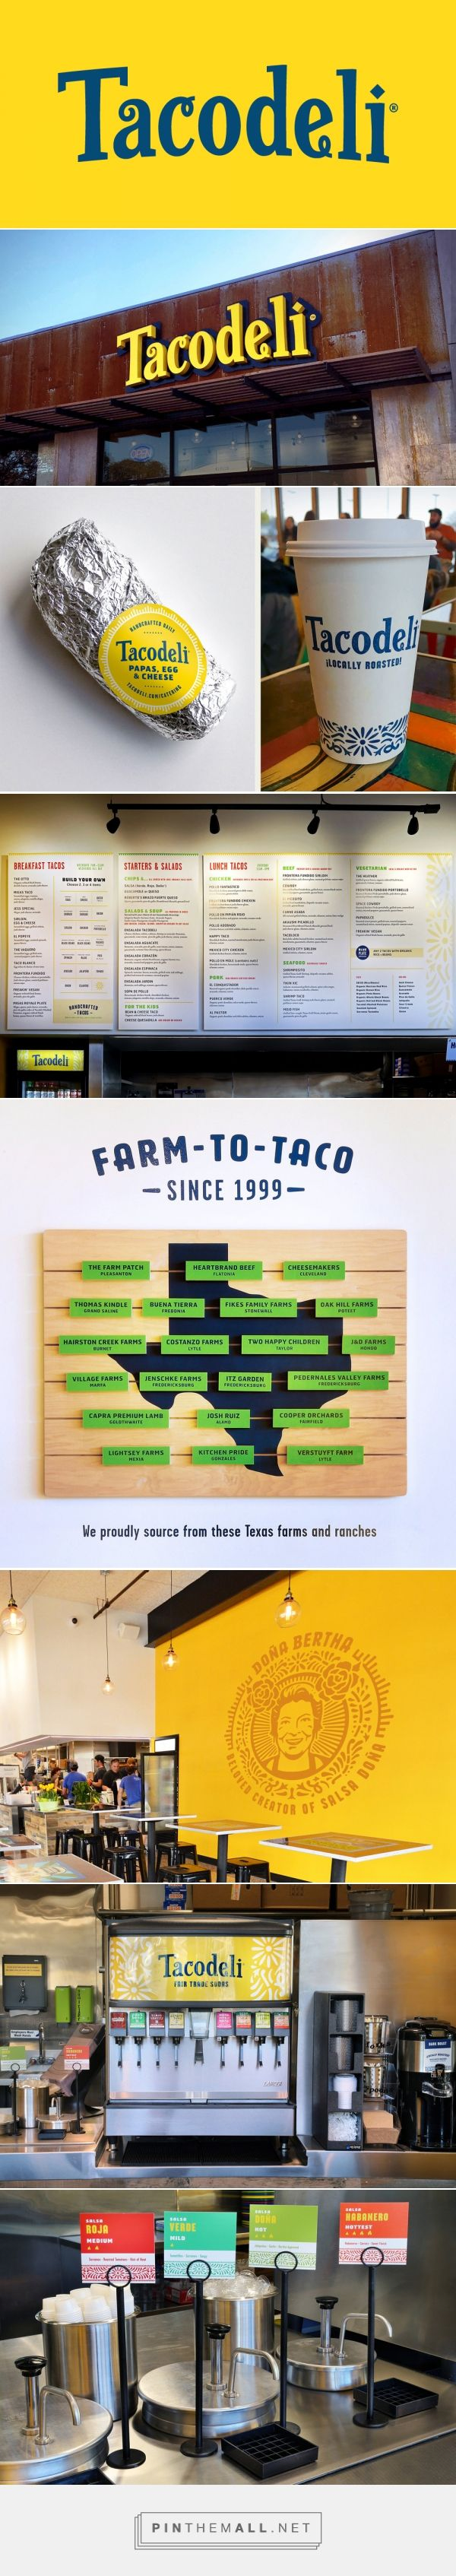 Brand New: New Logo and Identity for Tacodeli by The Butler Bros - created via https://pinthemall.net